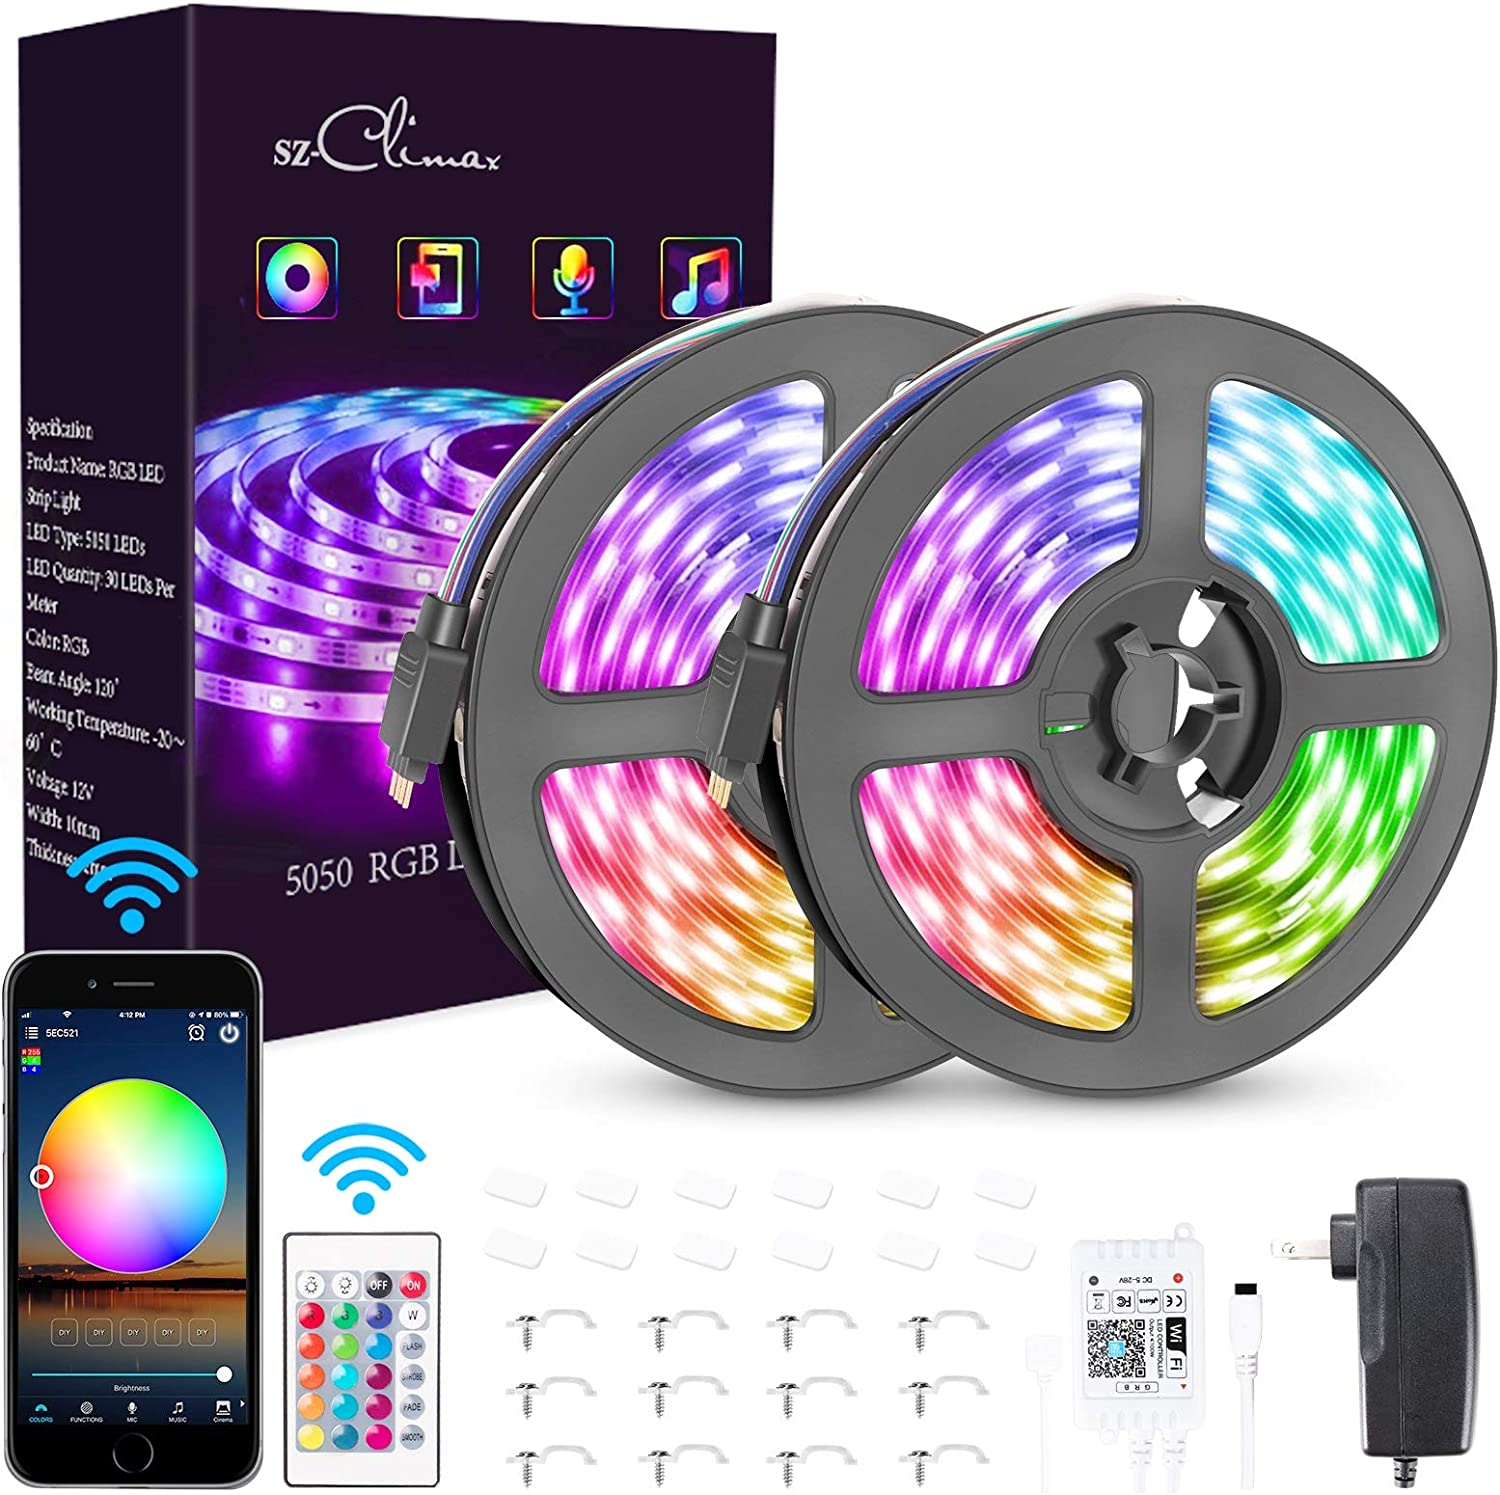 SZ-Climax Smart WiFi Colorful RGB LED Strip Lights Compatible with Alexa, Google Home Brighter 5050 LED, 16 Million Colors App Controlled Music Rope Light for Home, Party, for iOS Android(32.8FT/10M)